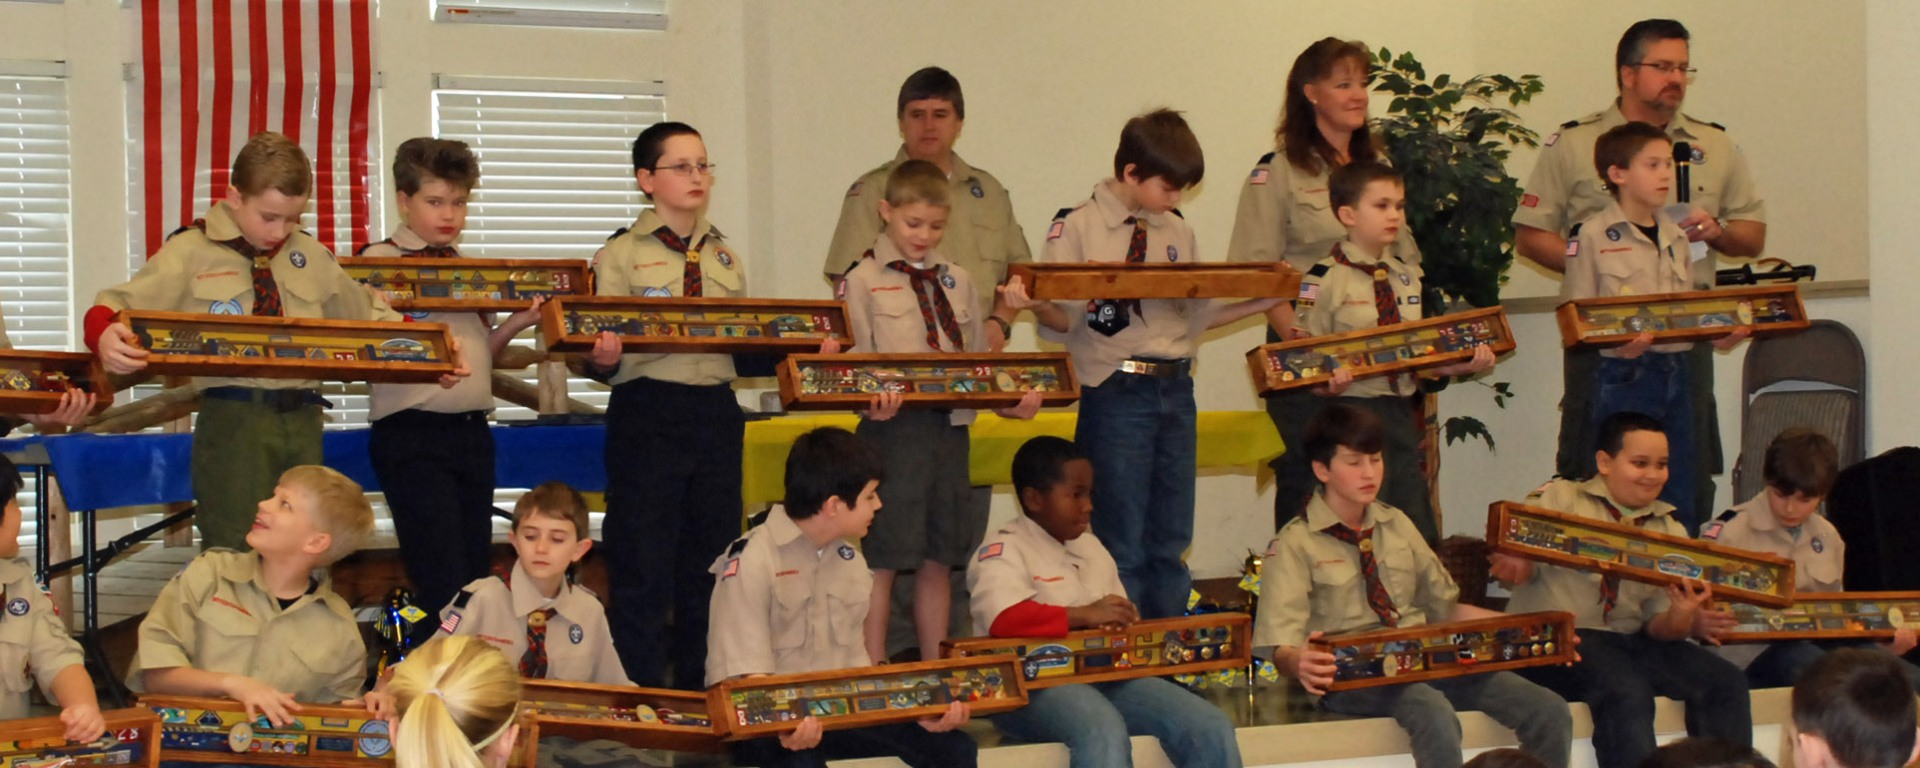 Webelos Ii Crossover Cub Scout Pack 28 Gainesville